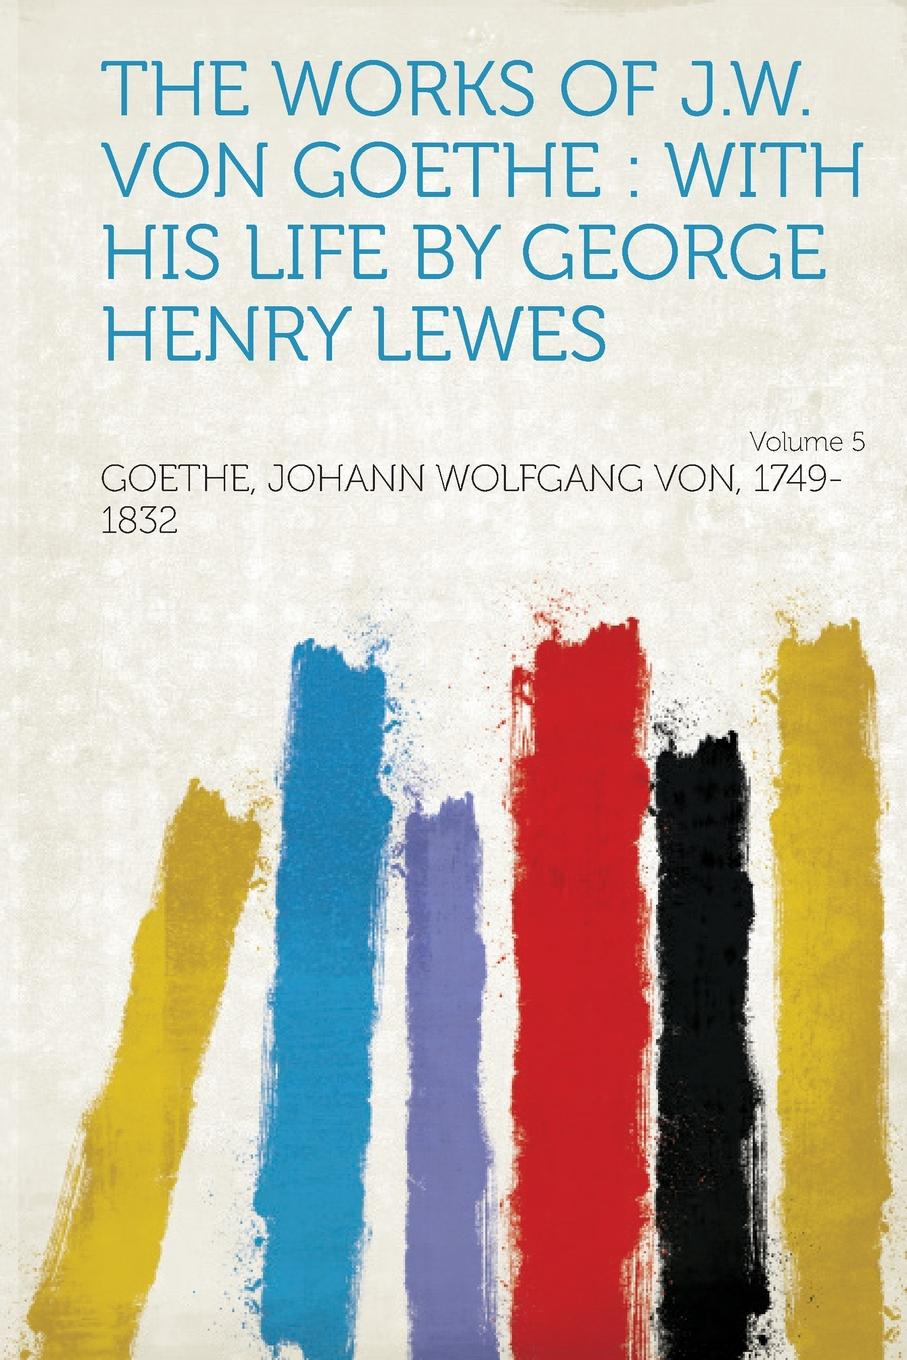 Goethe Johann Wolfgang von 1749-1832 The Works of J.W. Von Goethe. With His Life by George Henry Lewes Volume 5 george henry lewes the life of goethe